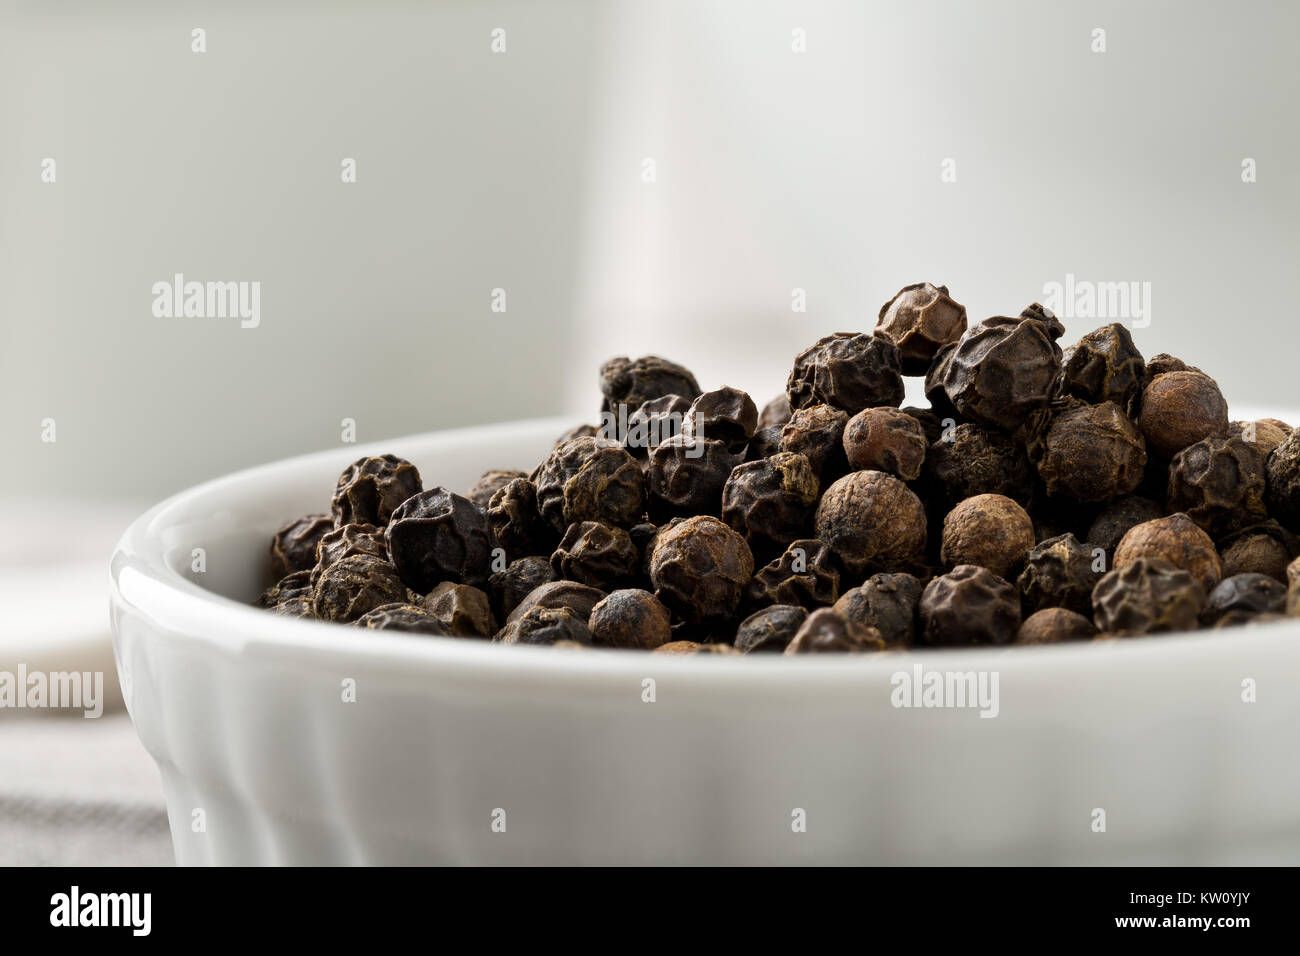 Raw, natural, unprocessed black pepper peppercorns white bowl on kitchen table - Stock Image